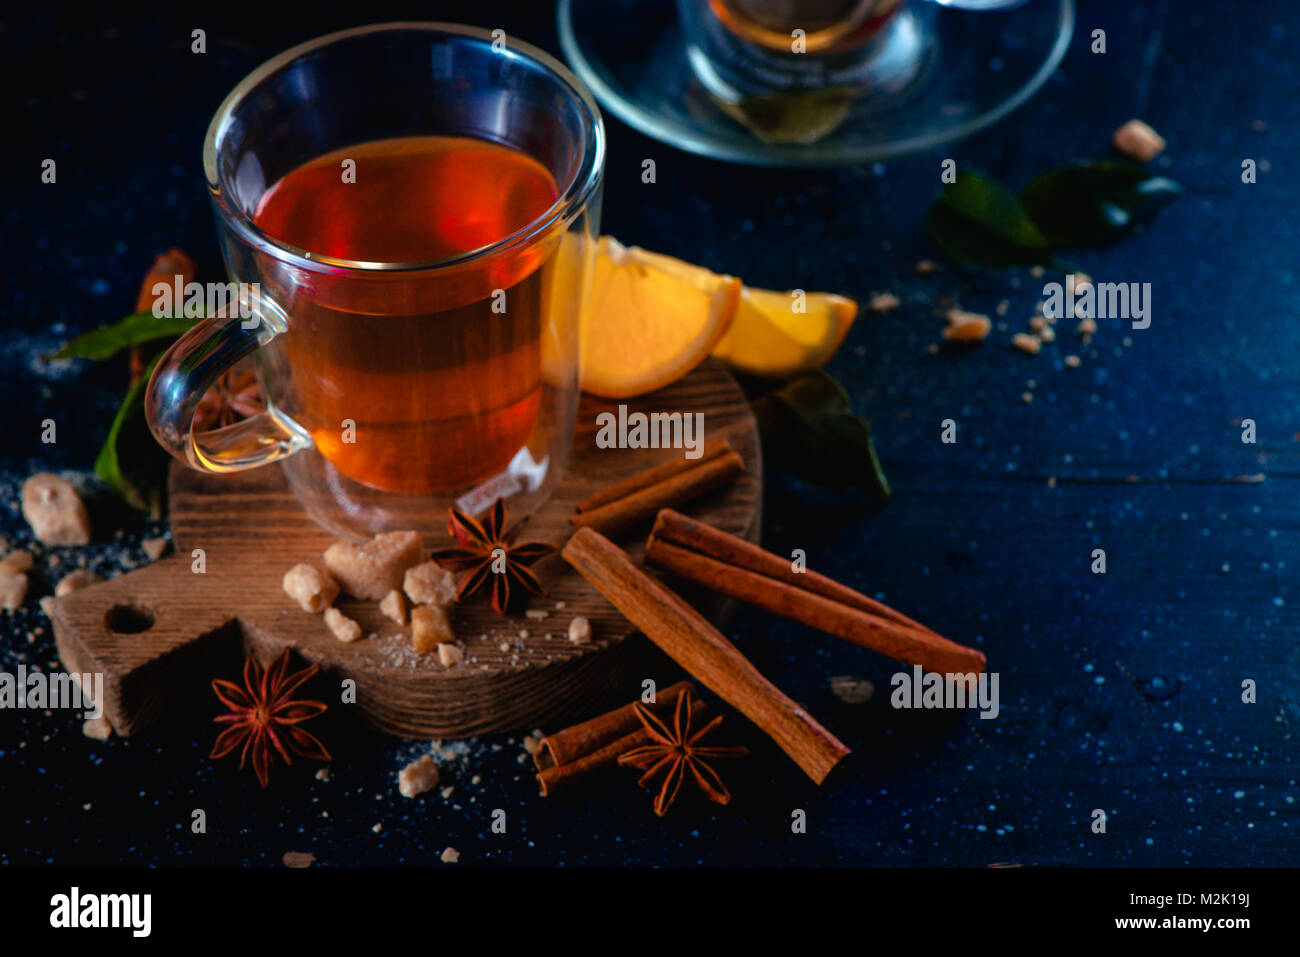 Double wall glass cup with hot lemon tea and cinnamon on a dark background. Spices for hot beverage. Cozy drink - Stock Image